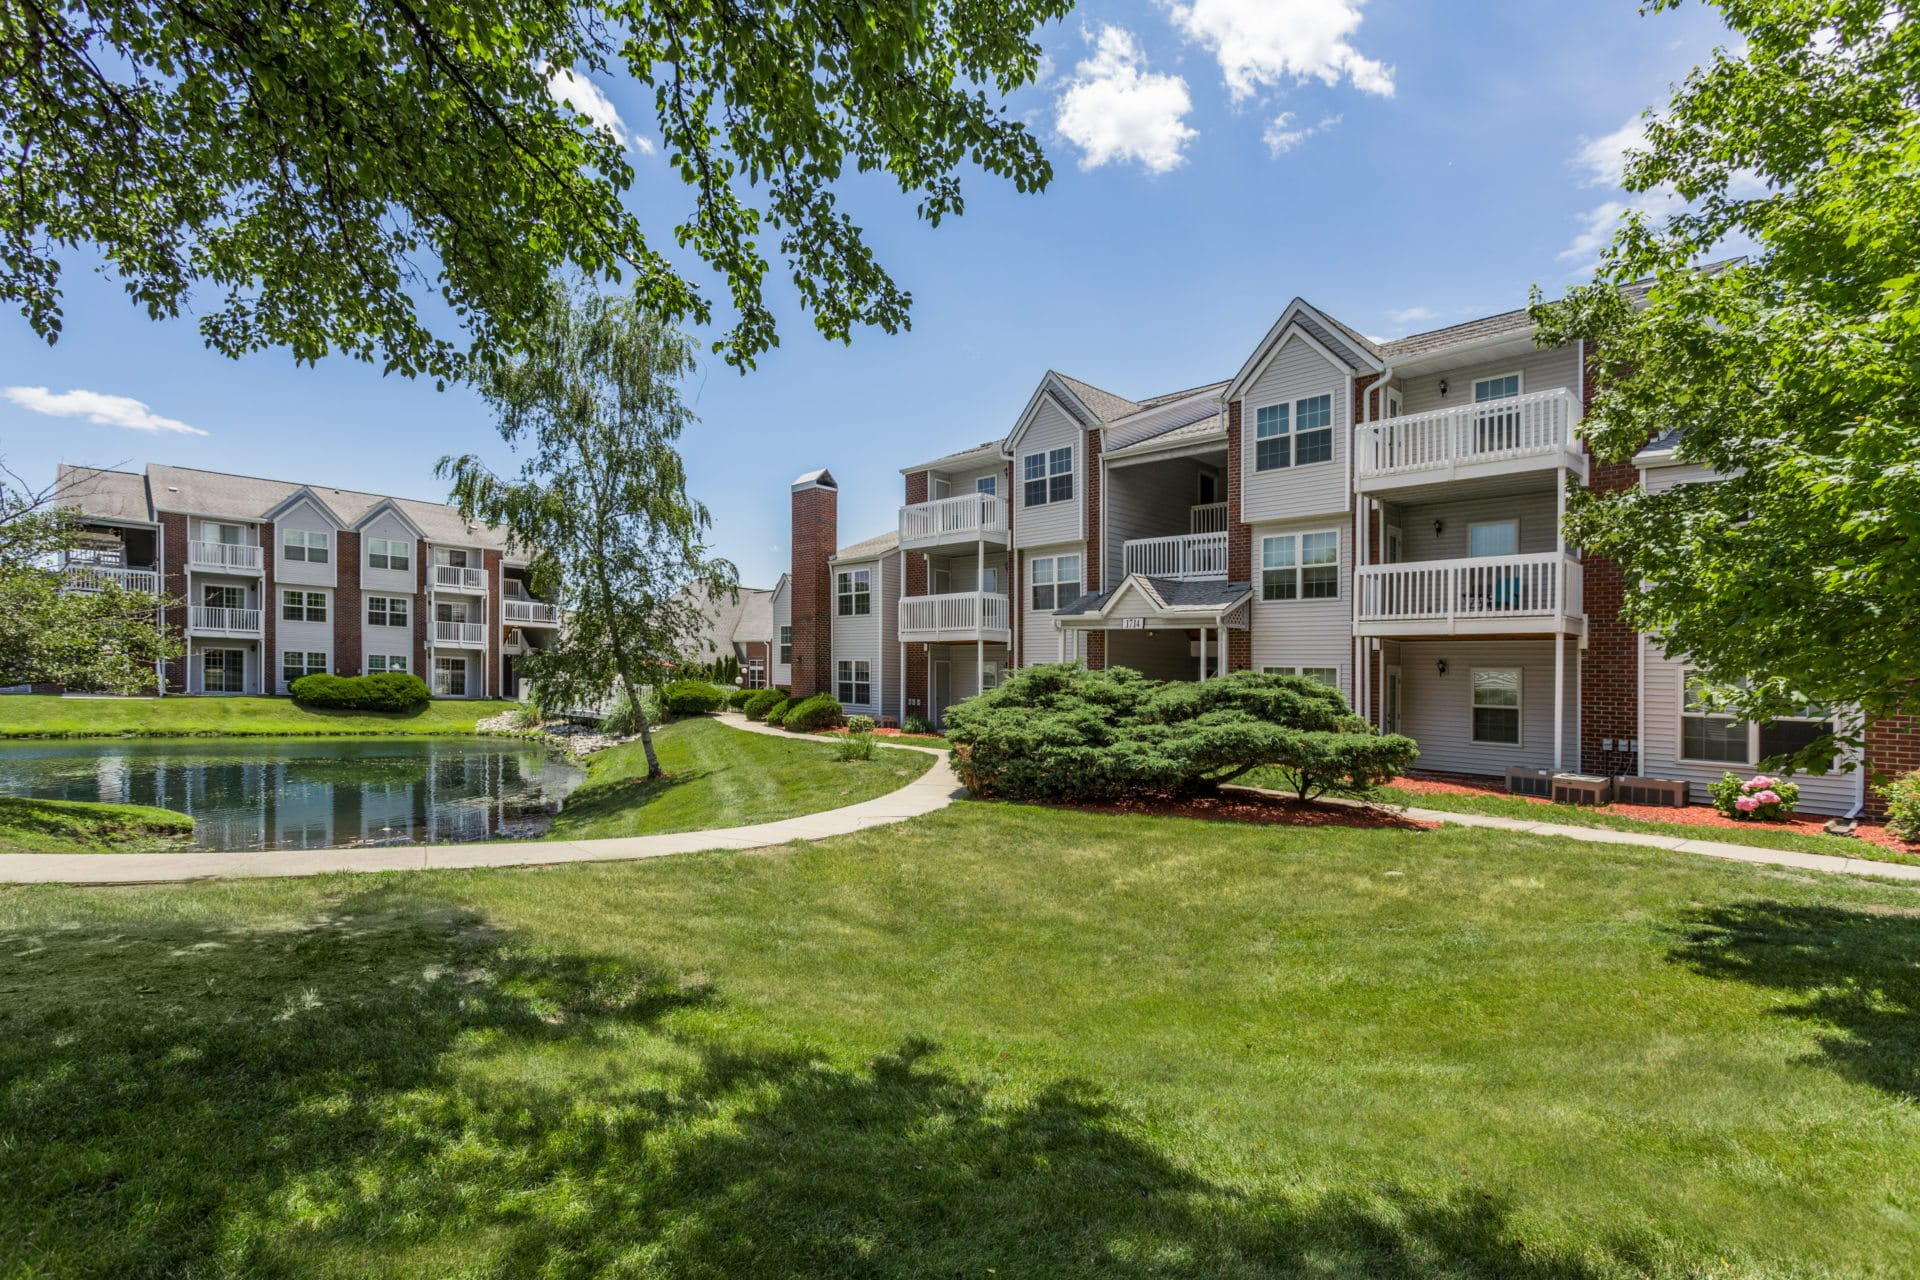 Communities regency multifamily - 2 bedroom apartments in champaign il ...